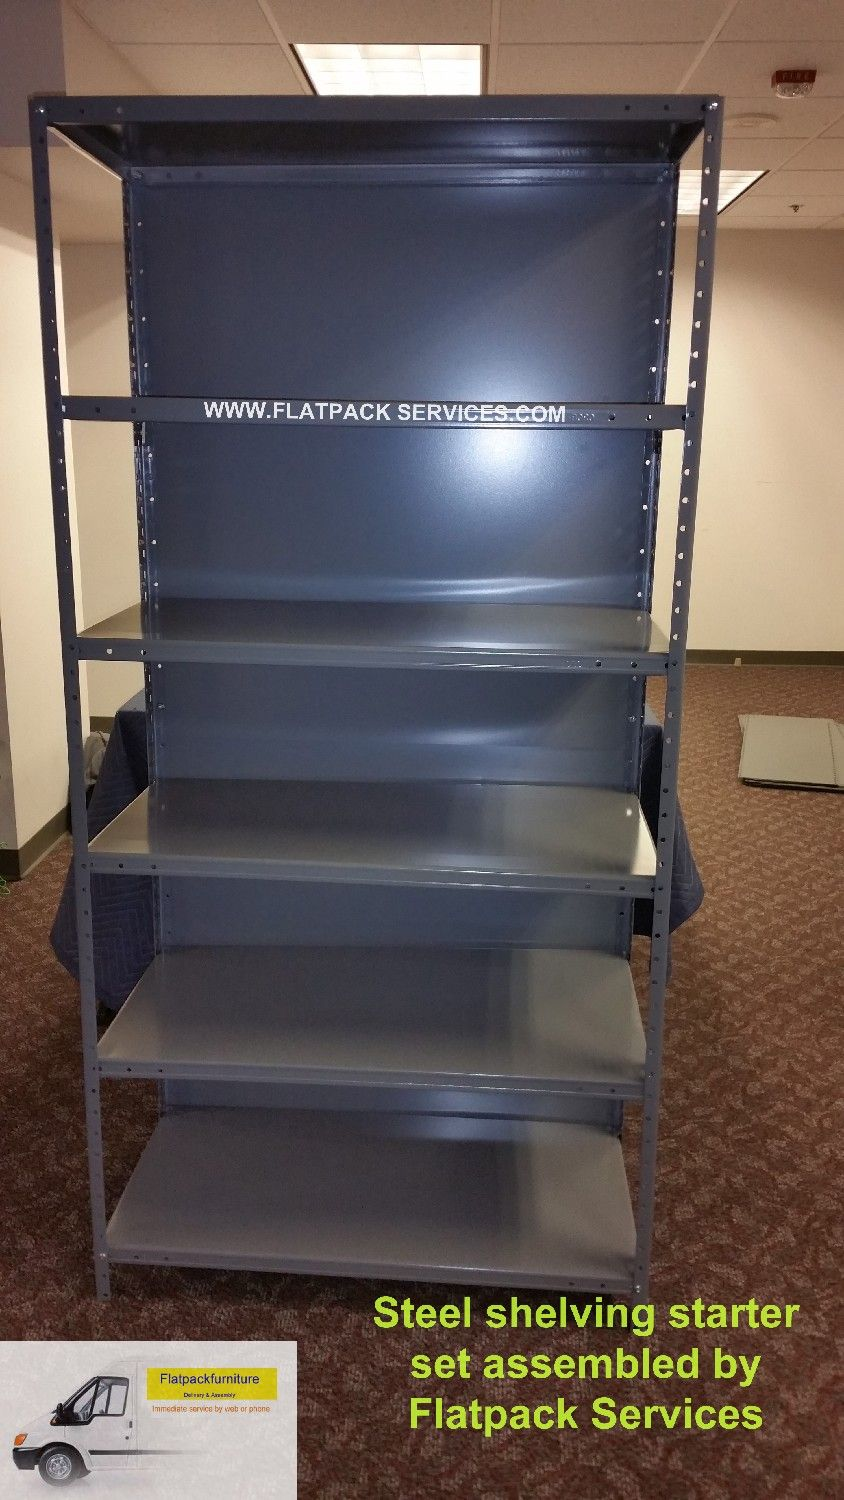 Triboro Starter Shelving Assembled By Flatpack Service 240 603 2781 Help  Assembling Furniture The 10 Best Furniture Assembly Services In Washington,  ...